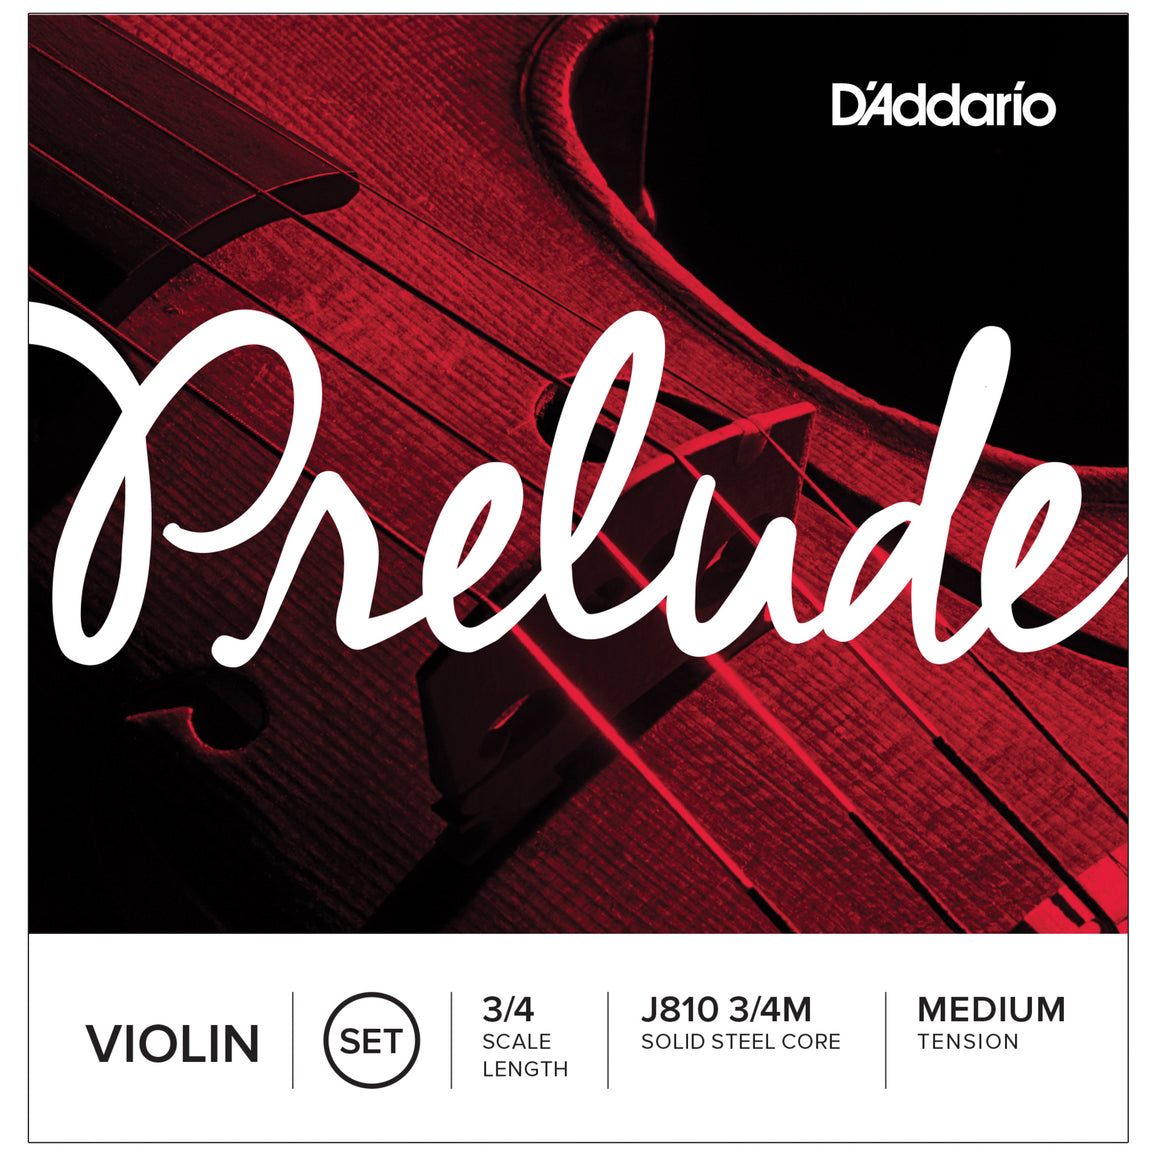 D'Addario Prelude 3/4 Violin Medium Strings Set J810 3/4M